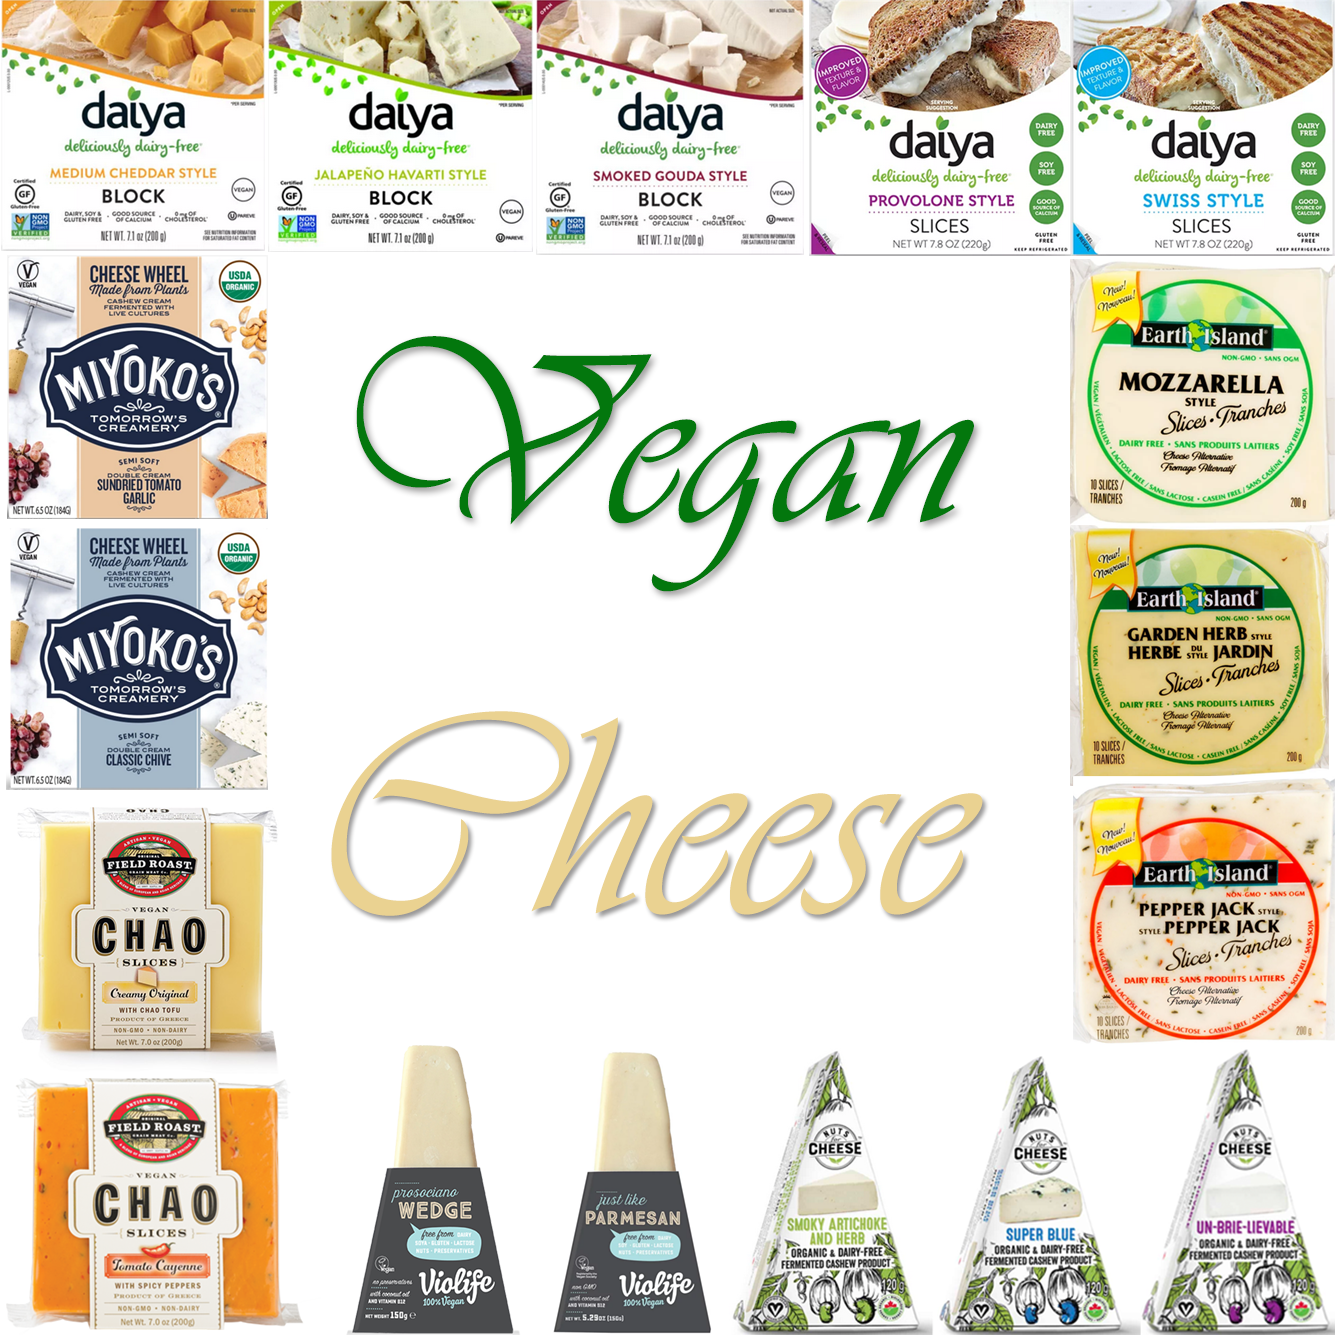 AterImber.com - The Veg Life - Vegan Tips - Vegan Cheese Alternatives - Vegan Cheese Alternatives - how to make cheese, Daiya, Miyoko's, Nuts for Cheese, Earth Island, Field Roast, Chao, vegan food, vegan cheese, food blogger